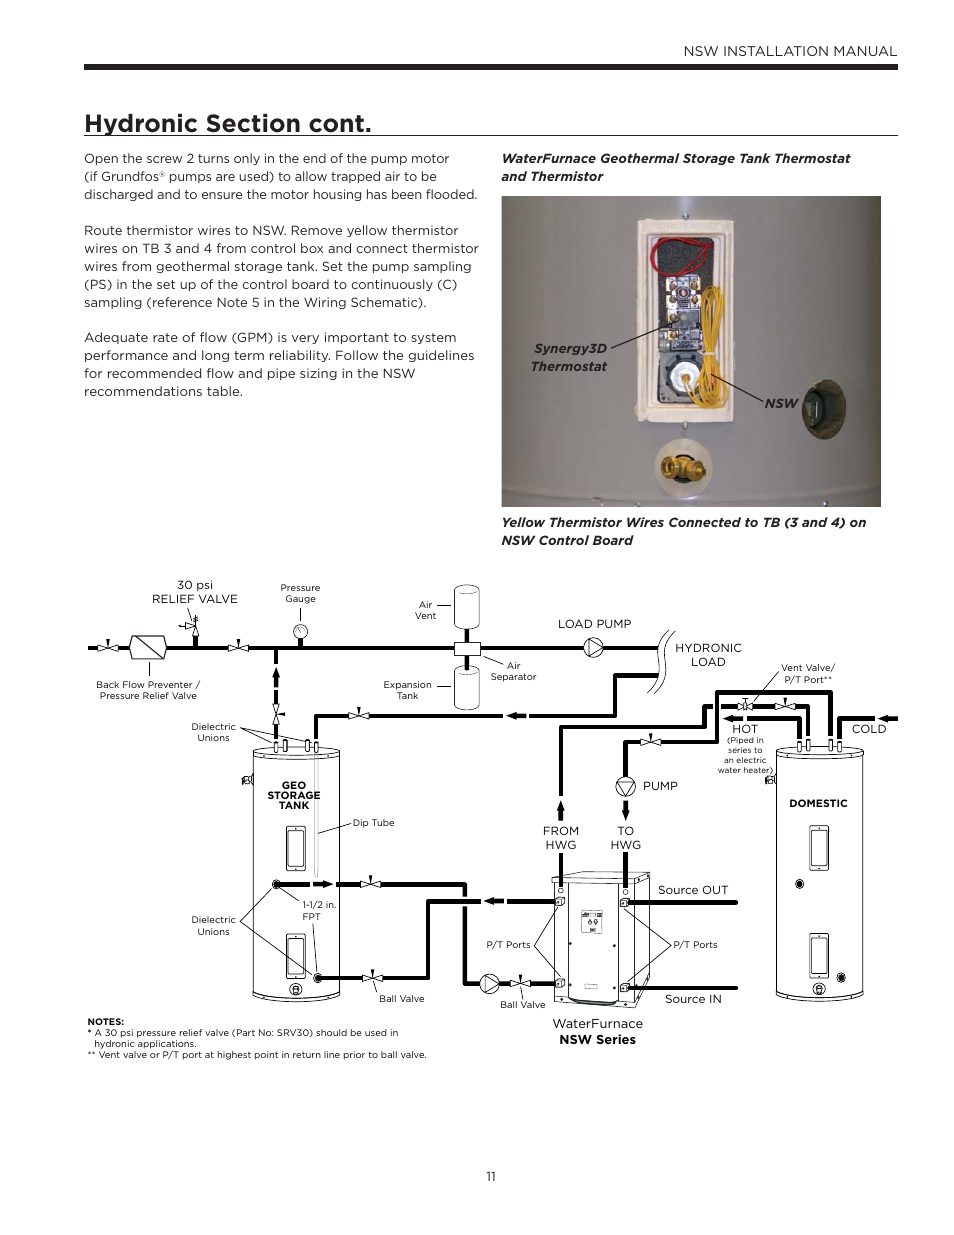 Waterfurnace Envision Hydronic Nsw User Manual Page 11 52 Wiring Diagram